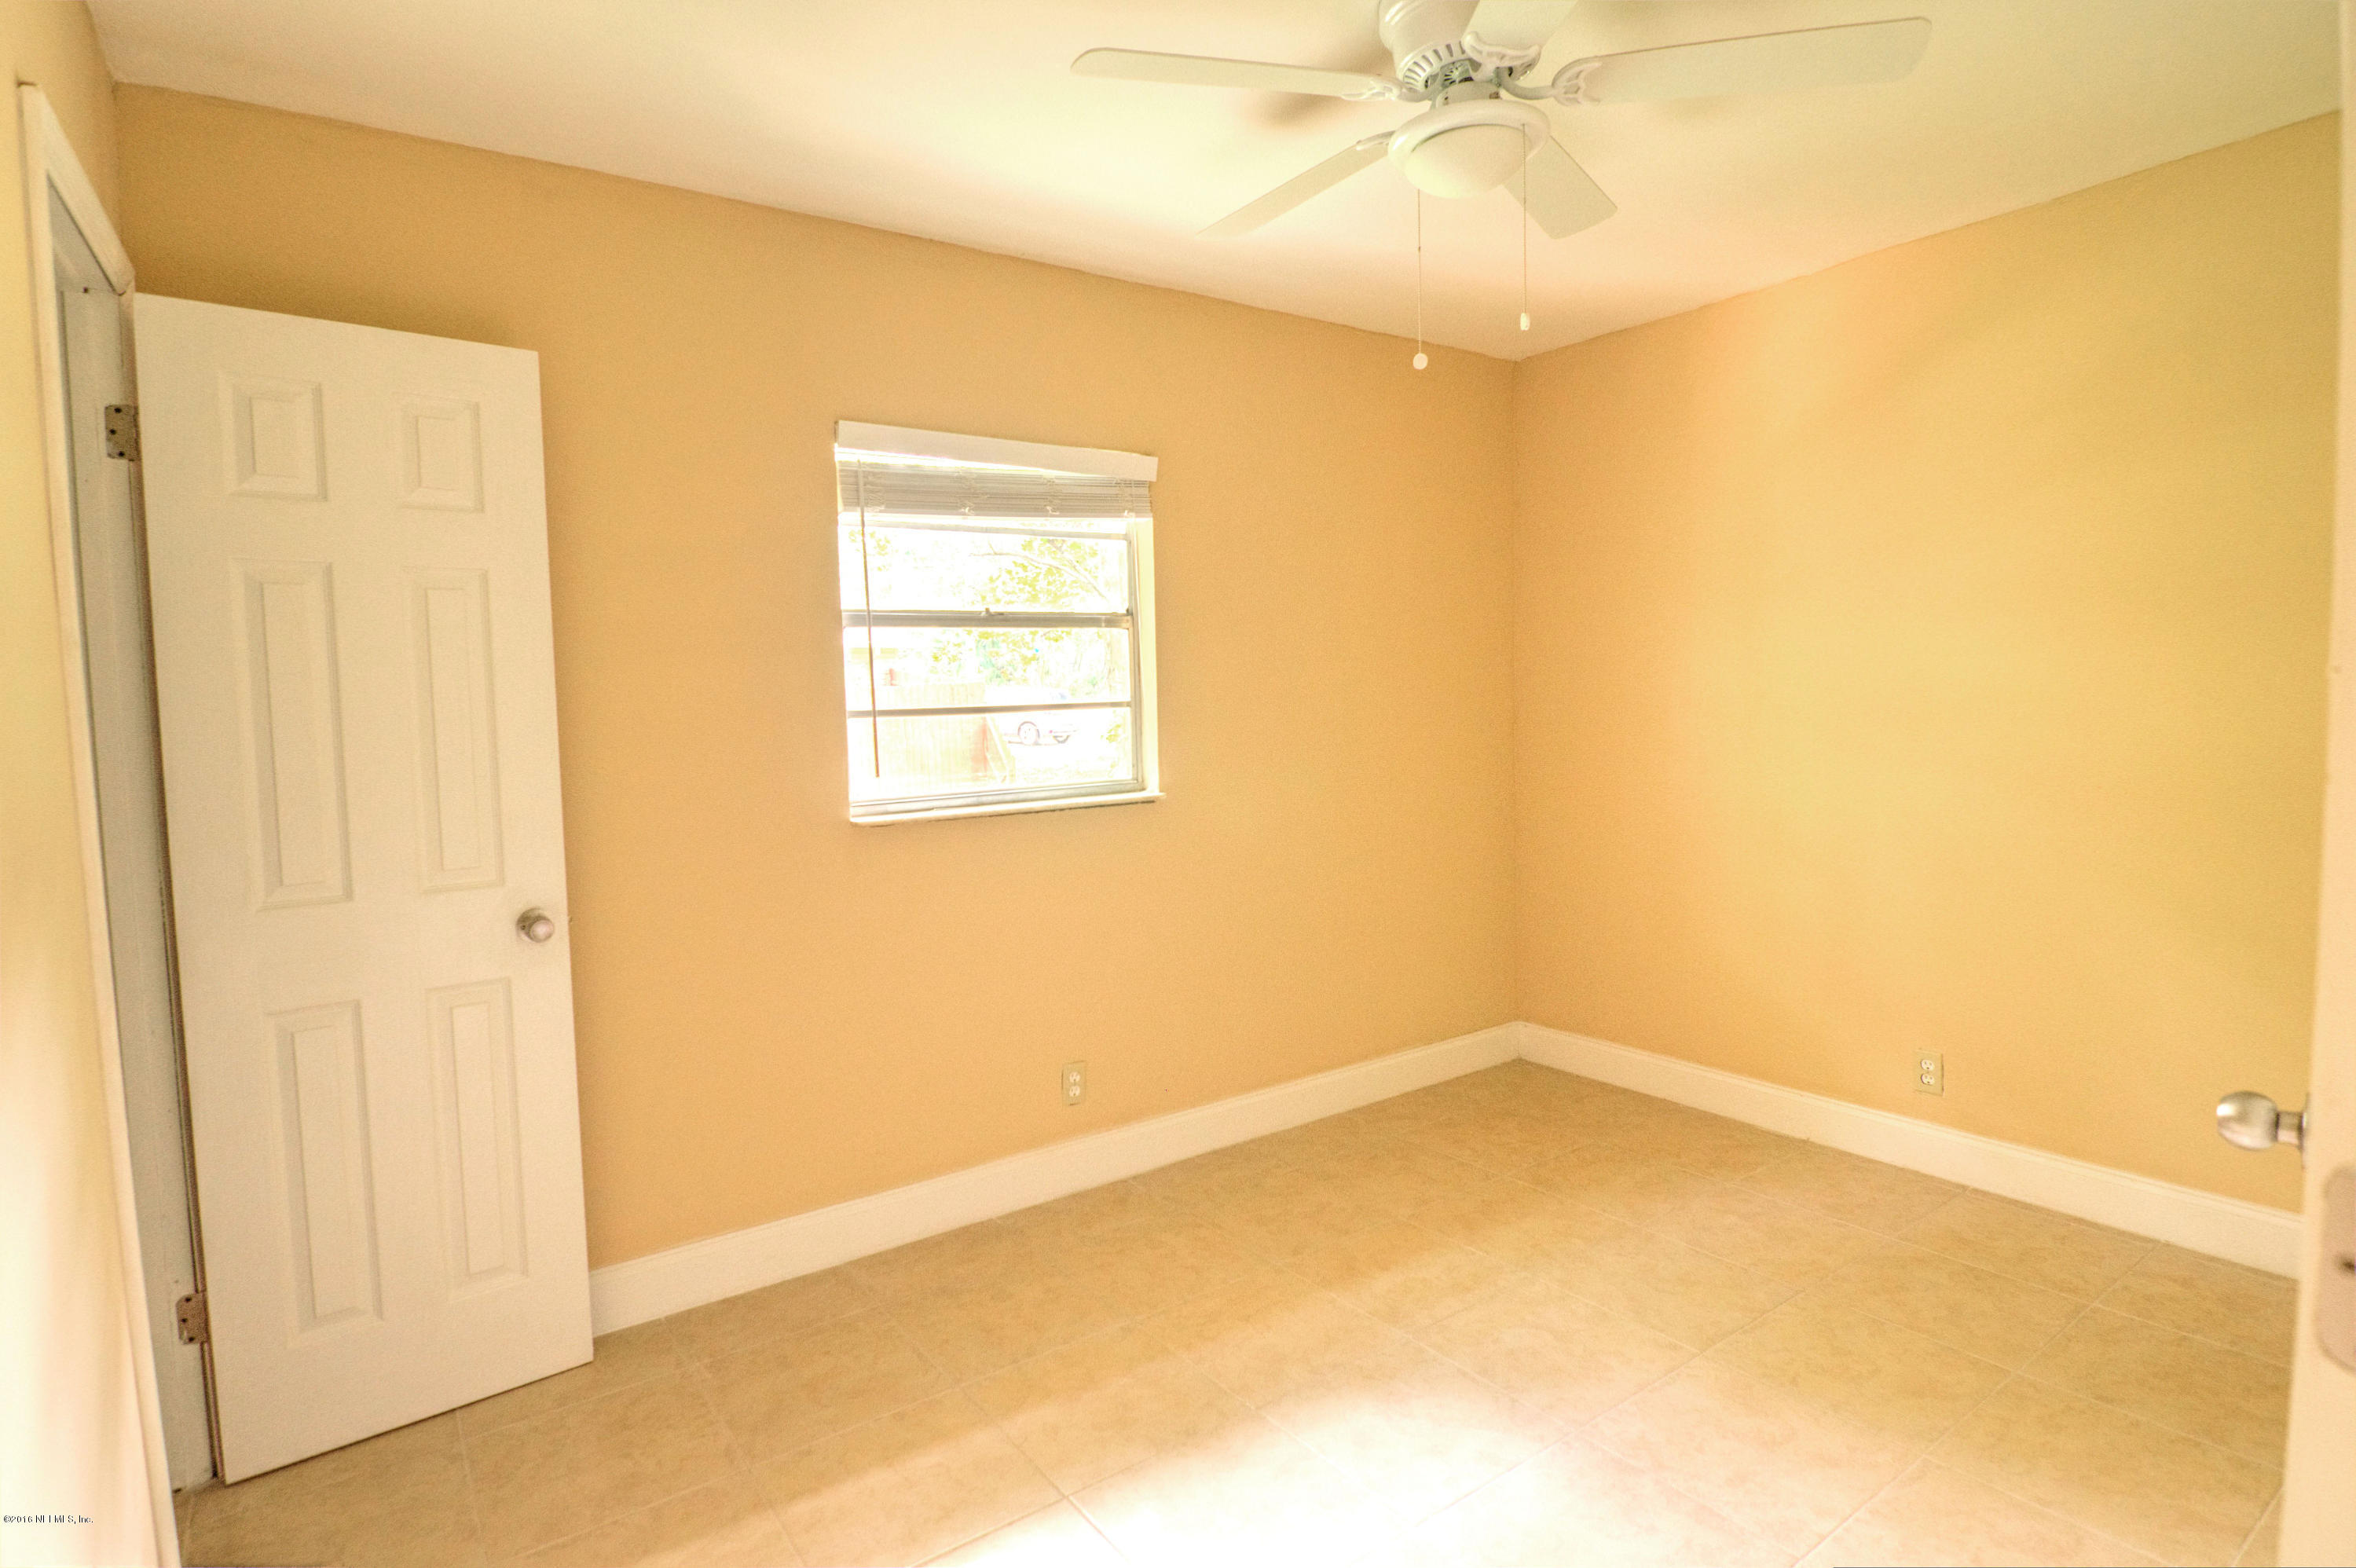 2885 GILMORE, JACKSONVILLE, FLORIDA 32205, 2 Bedrooms Bedrooms, ,1 BathroomBathrooms,Rental,For Rent,GILMORE,1081538